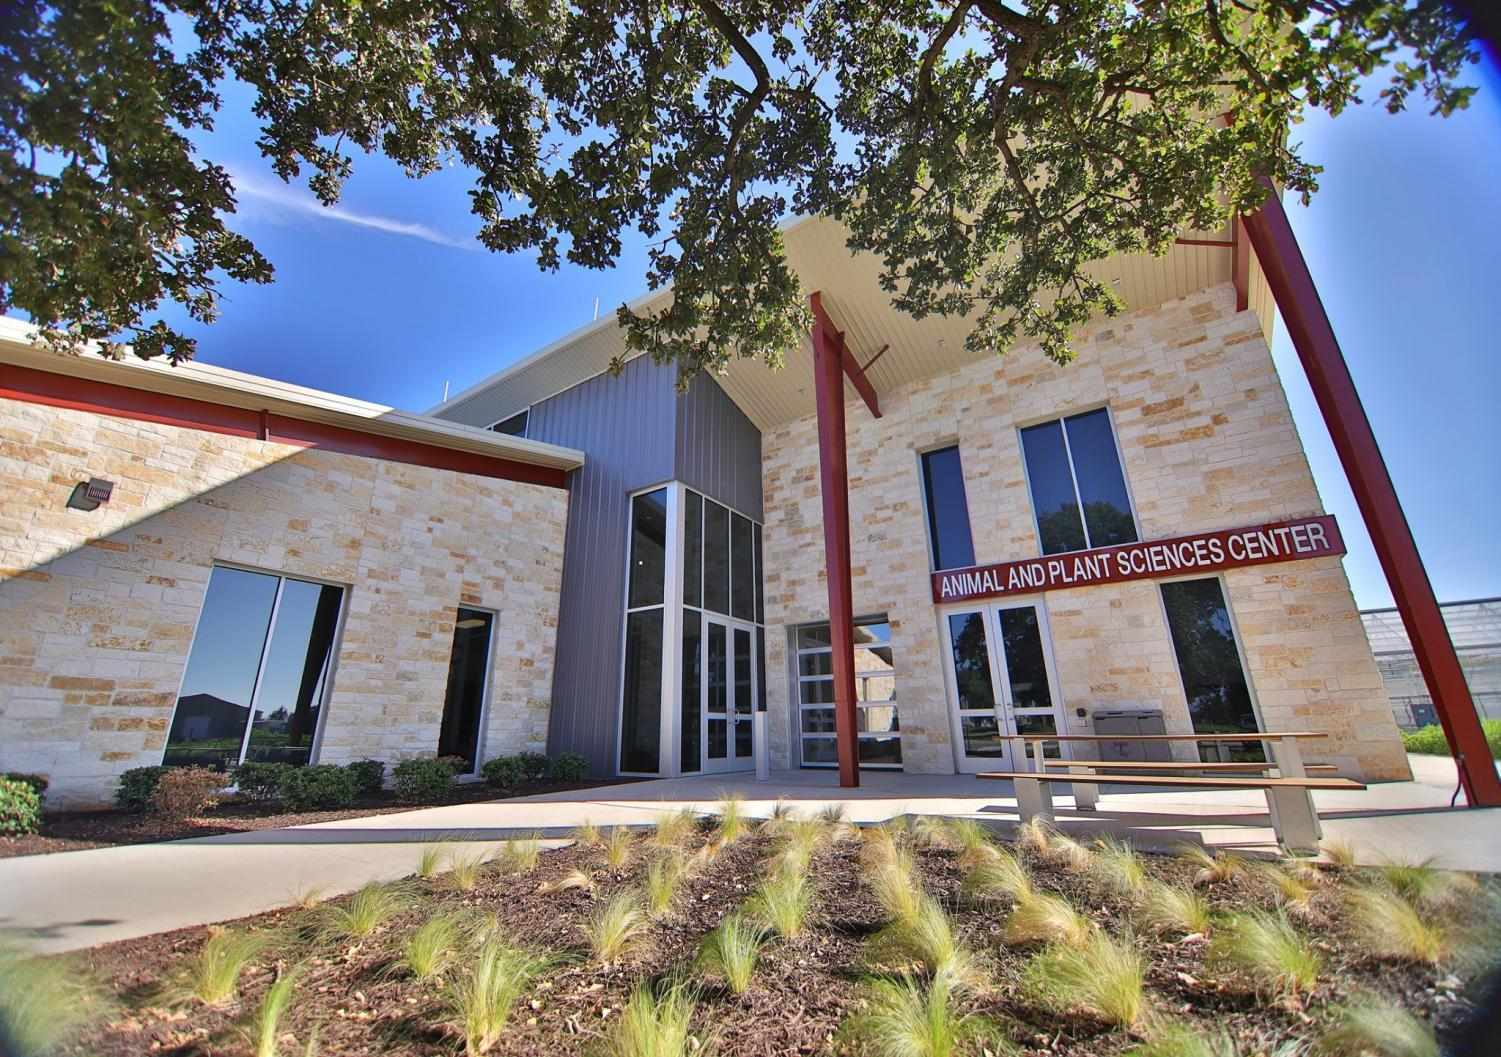 The new Animal and Plant Sciences Center located at the Tarleton farm. The Animal Science side has an open sided learning room where students can study animals to encourage more hands-on learning, and it also has many animal science labs. The Plant Sciences side has horticulture rooms, labs and 4 green houses.